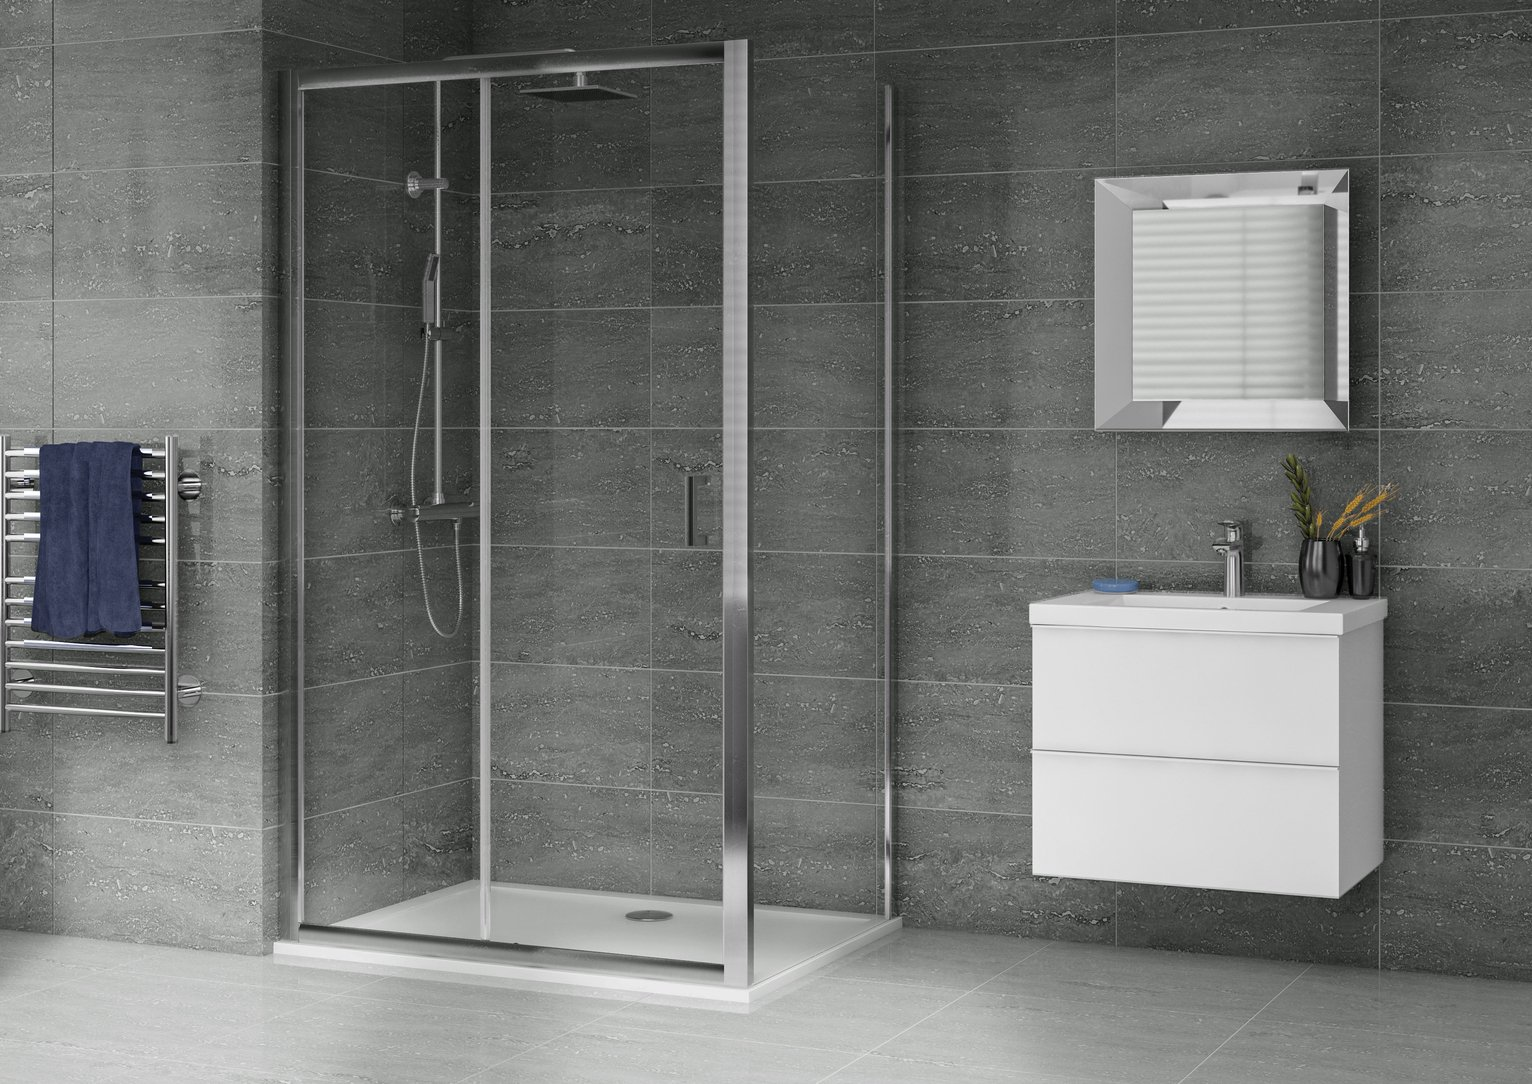 Image of Aqualux 1200mm x 900mm Sliding Door Shower Enclosure & Tray